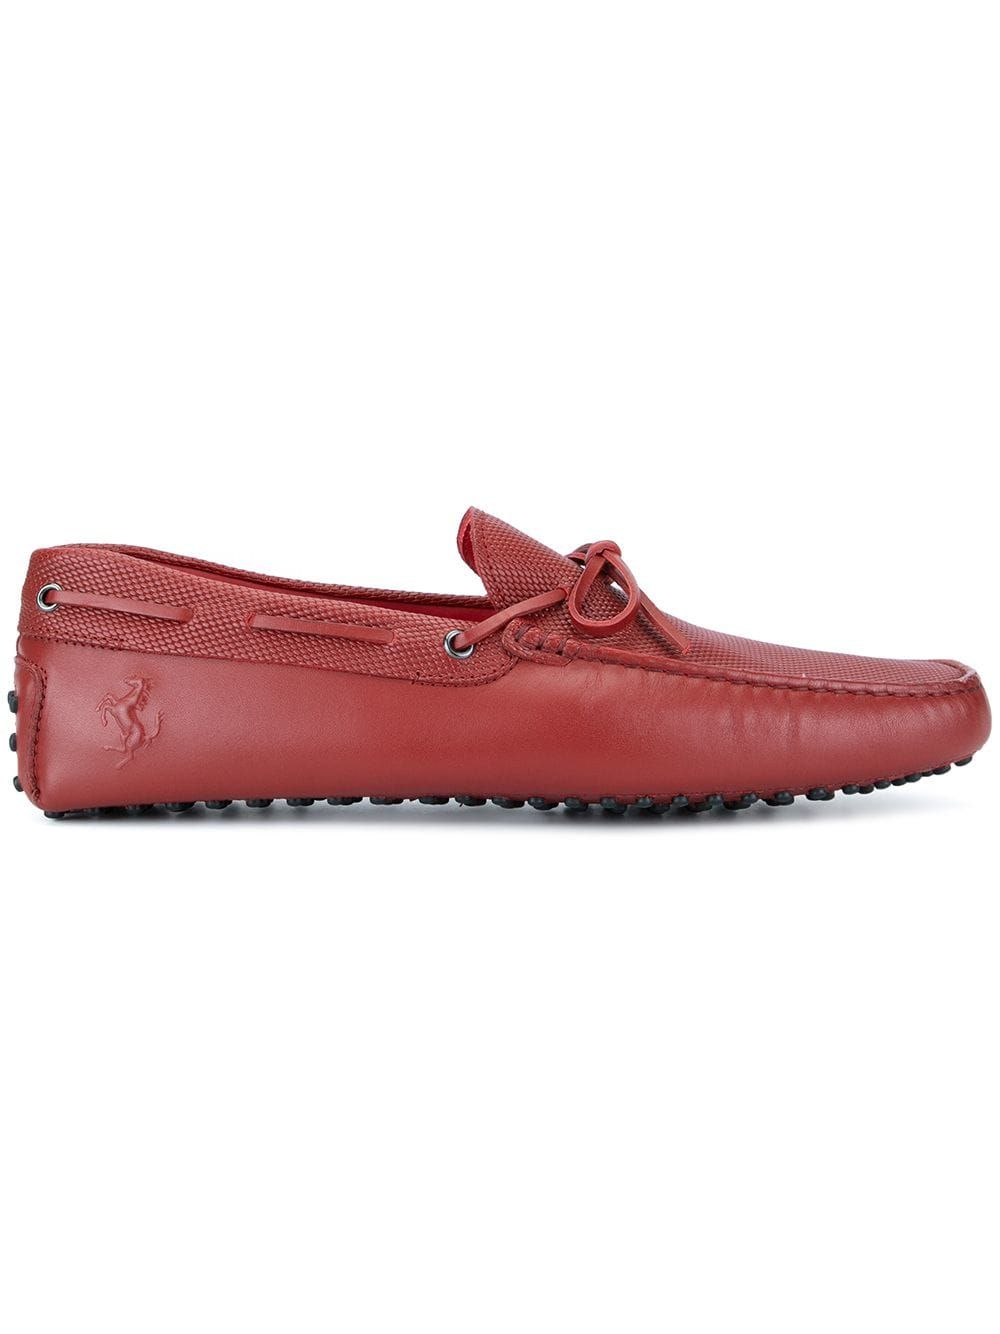 54f8f74d370 TOD'S TOD'S TOD'S FOR FERRARI GOMMINO DRIVING SHOES - RED. #tods #shoes